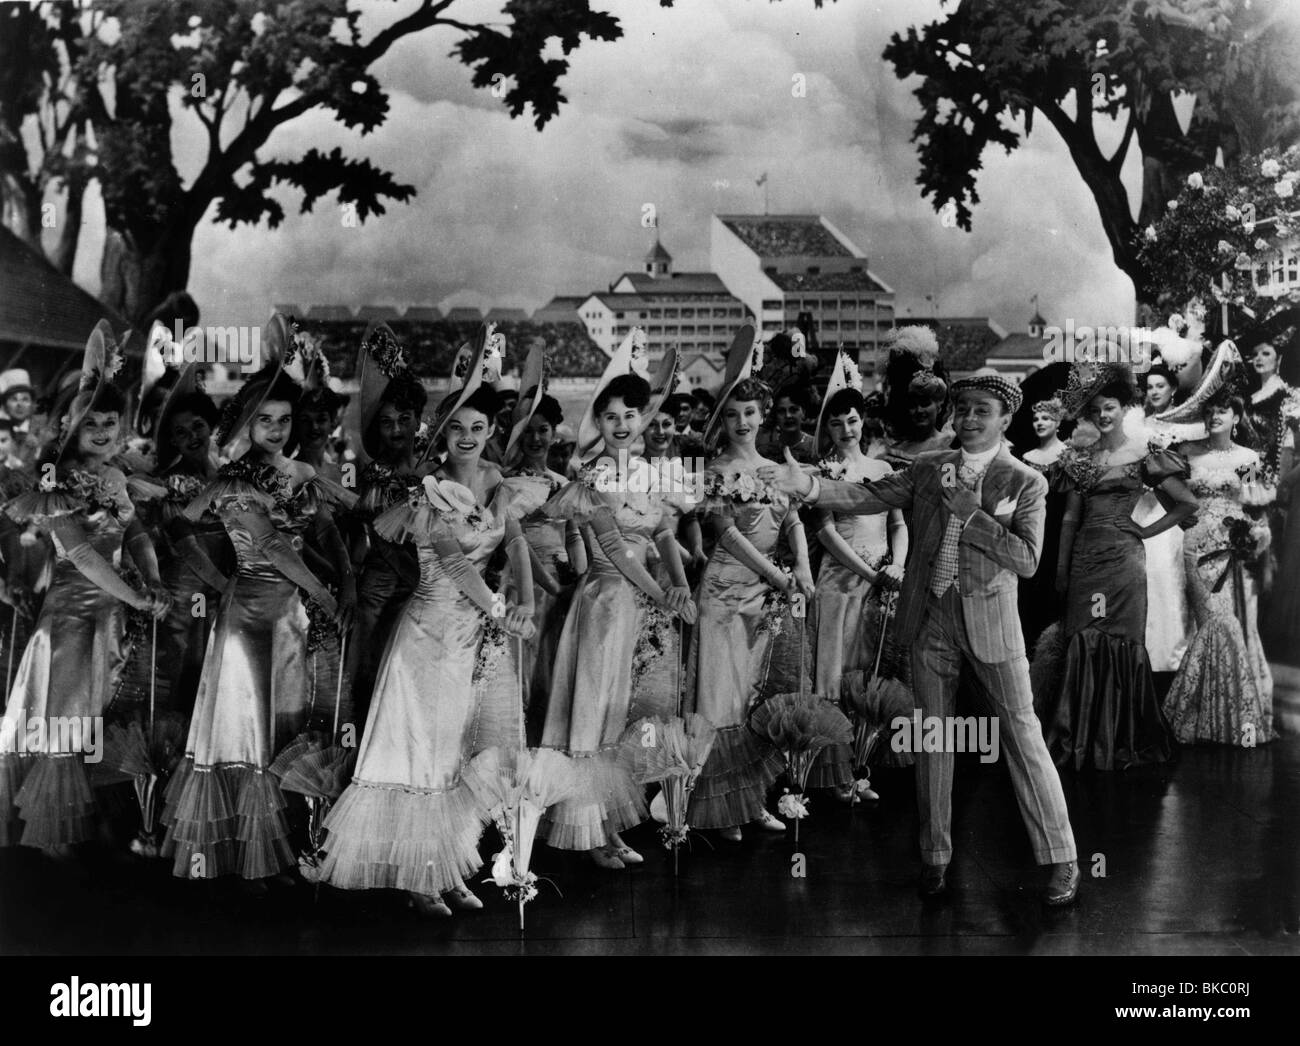 YANKEE DOODLE DANDY(1942) JAMES CAGNEY YDD 004P - Stock Image